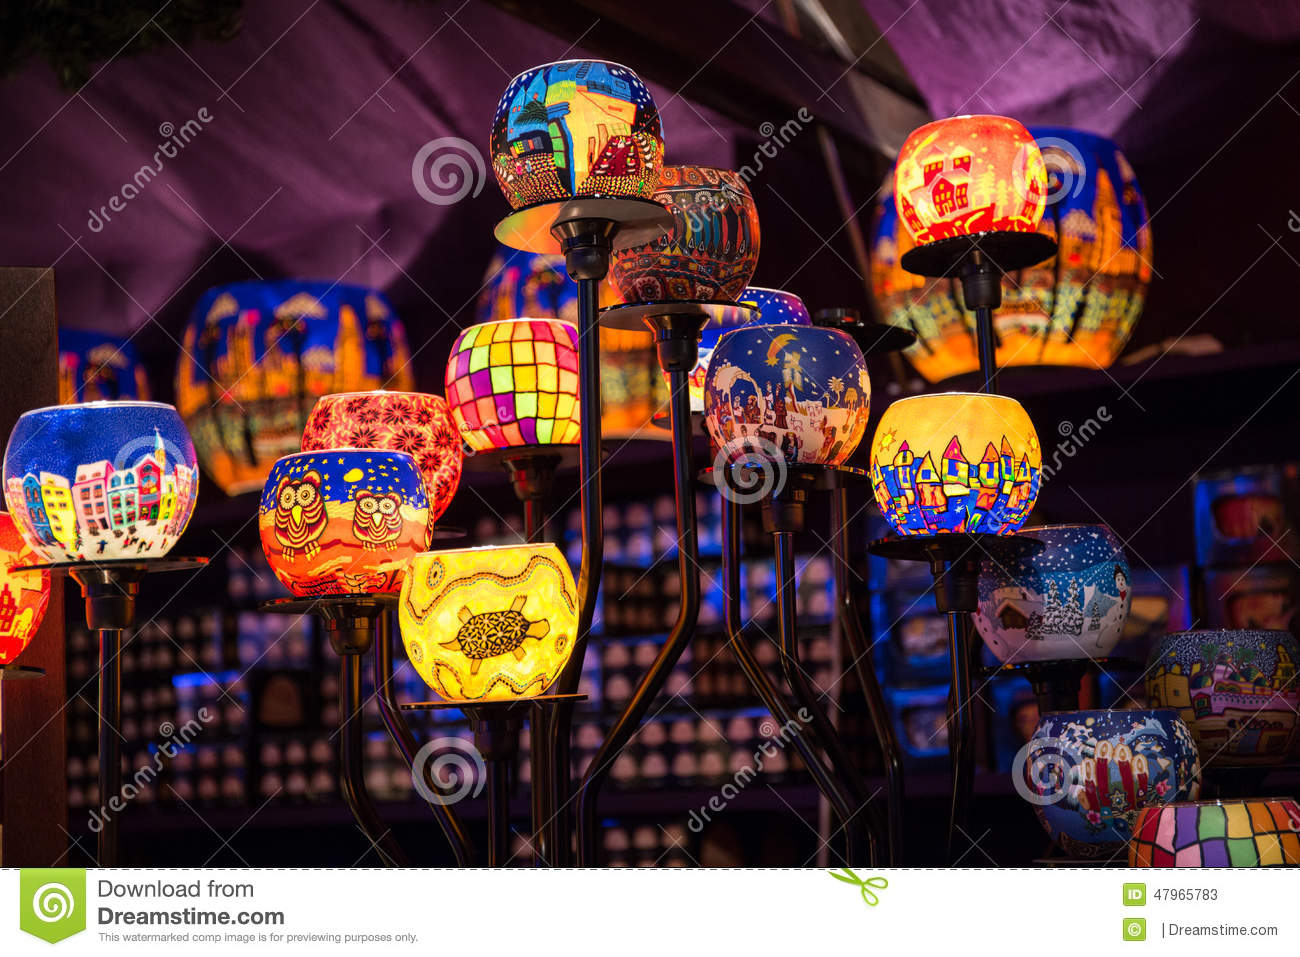 download christmas tea lights stock image image of bright decorations 47965783